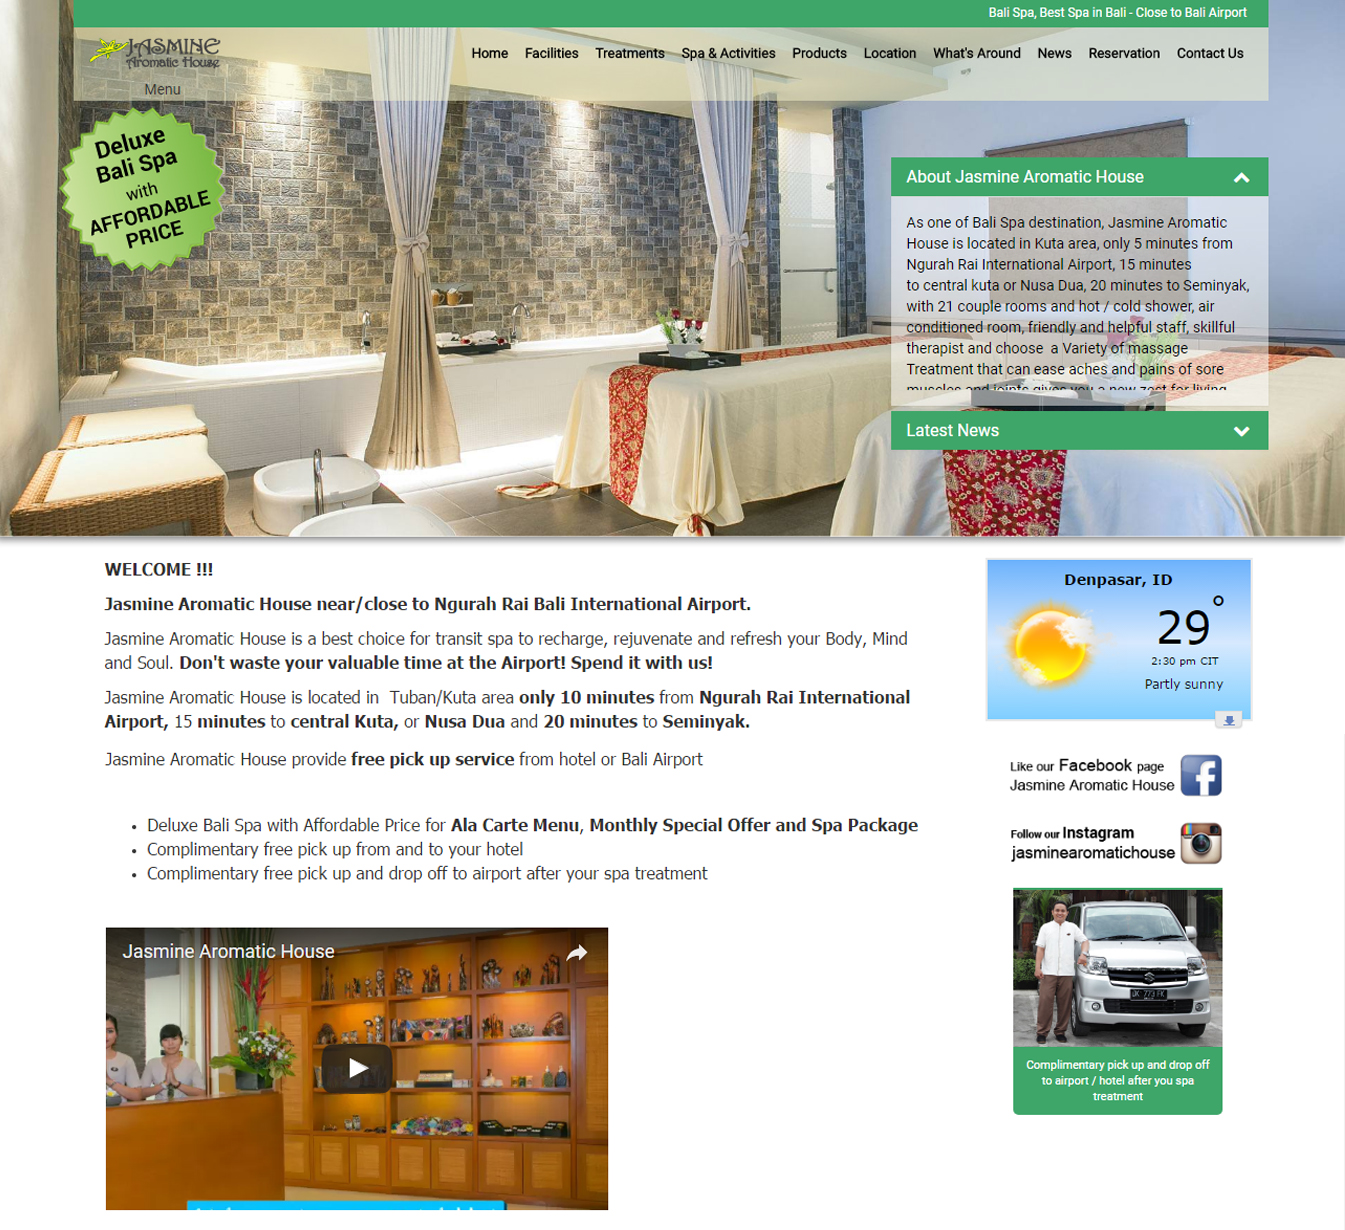 Carte Bali Avec Aeroport.Jasmine Aromatic House Bali Web Design And Development